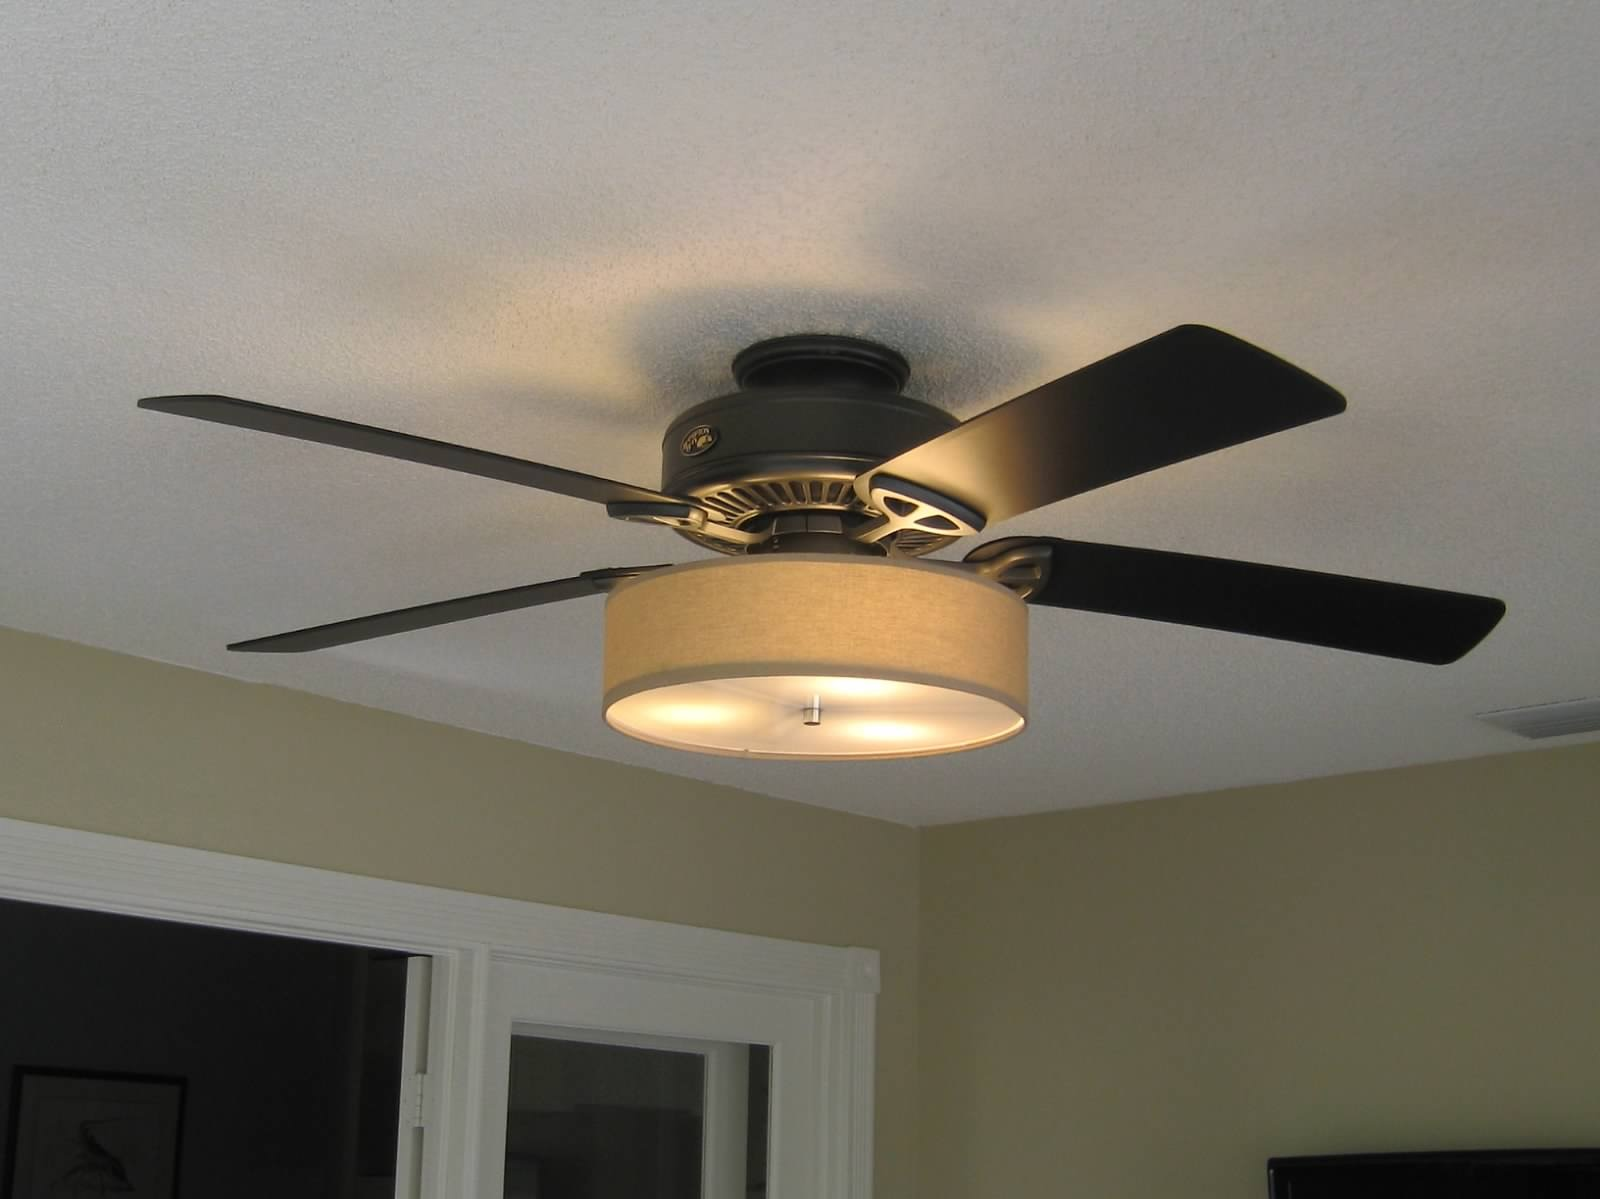 depot bay home ceilings fan hampton with light co white tulum lights fans smsender ceiling